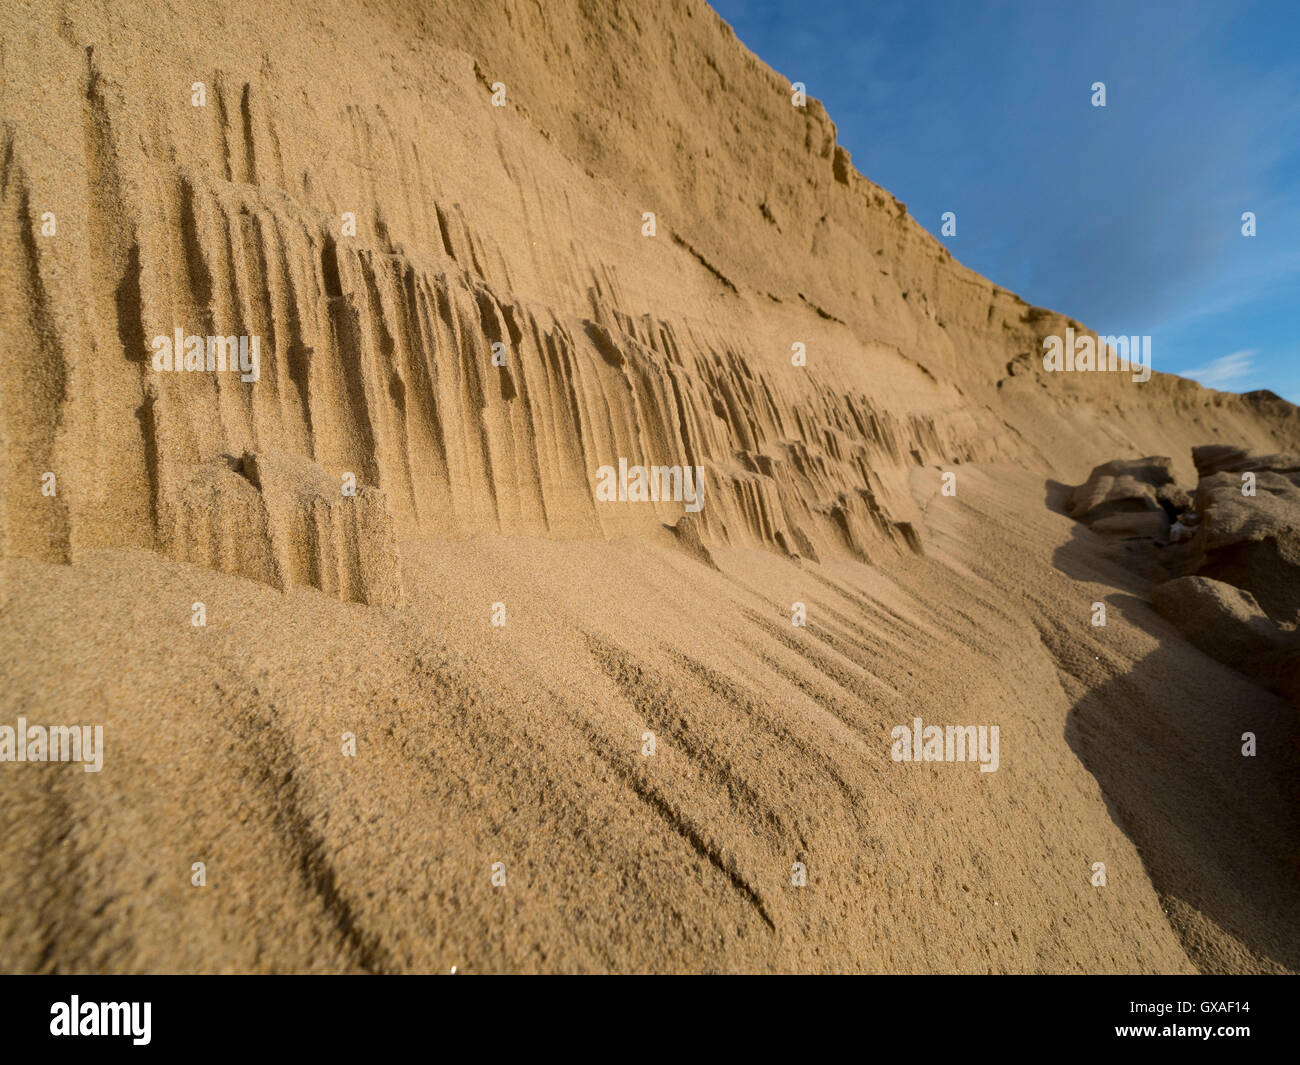 Sand dune sculptured by the wind. - Stock Image